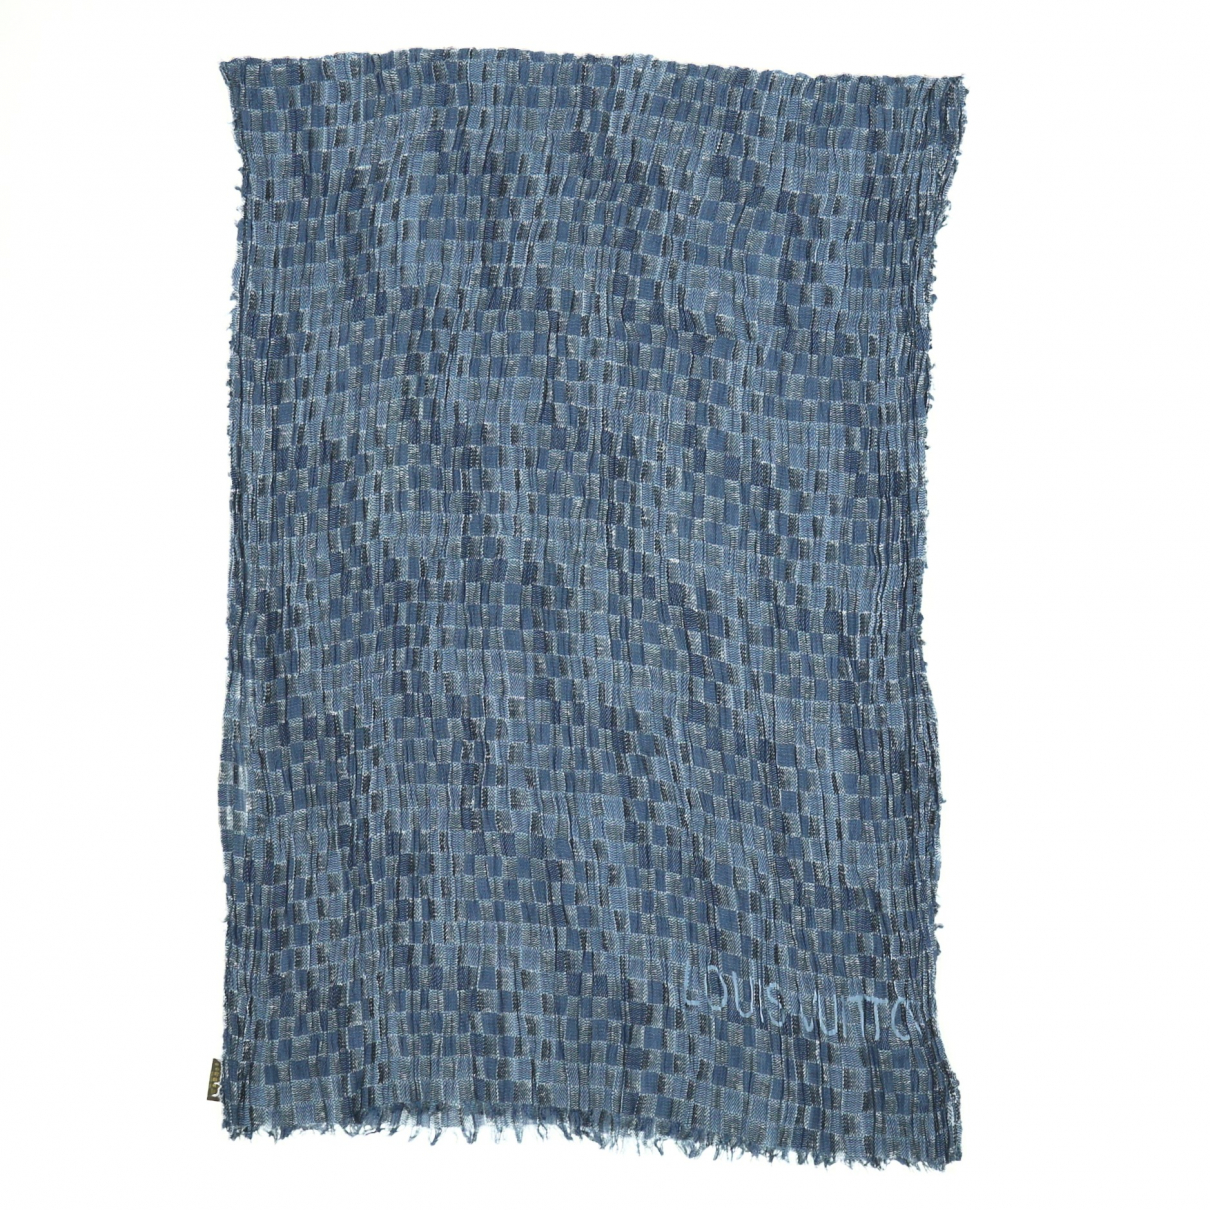 Louis Vuitton \N Blue scarf for Women \N